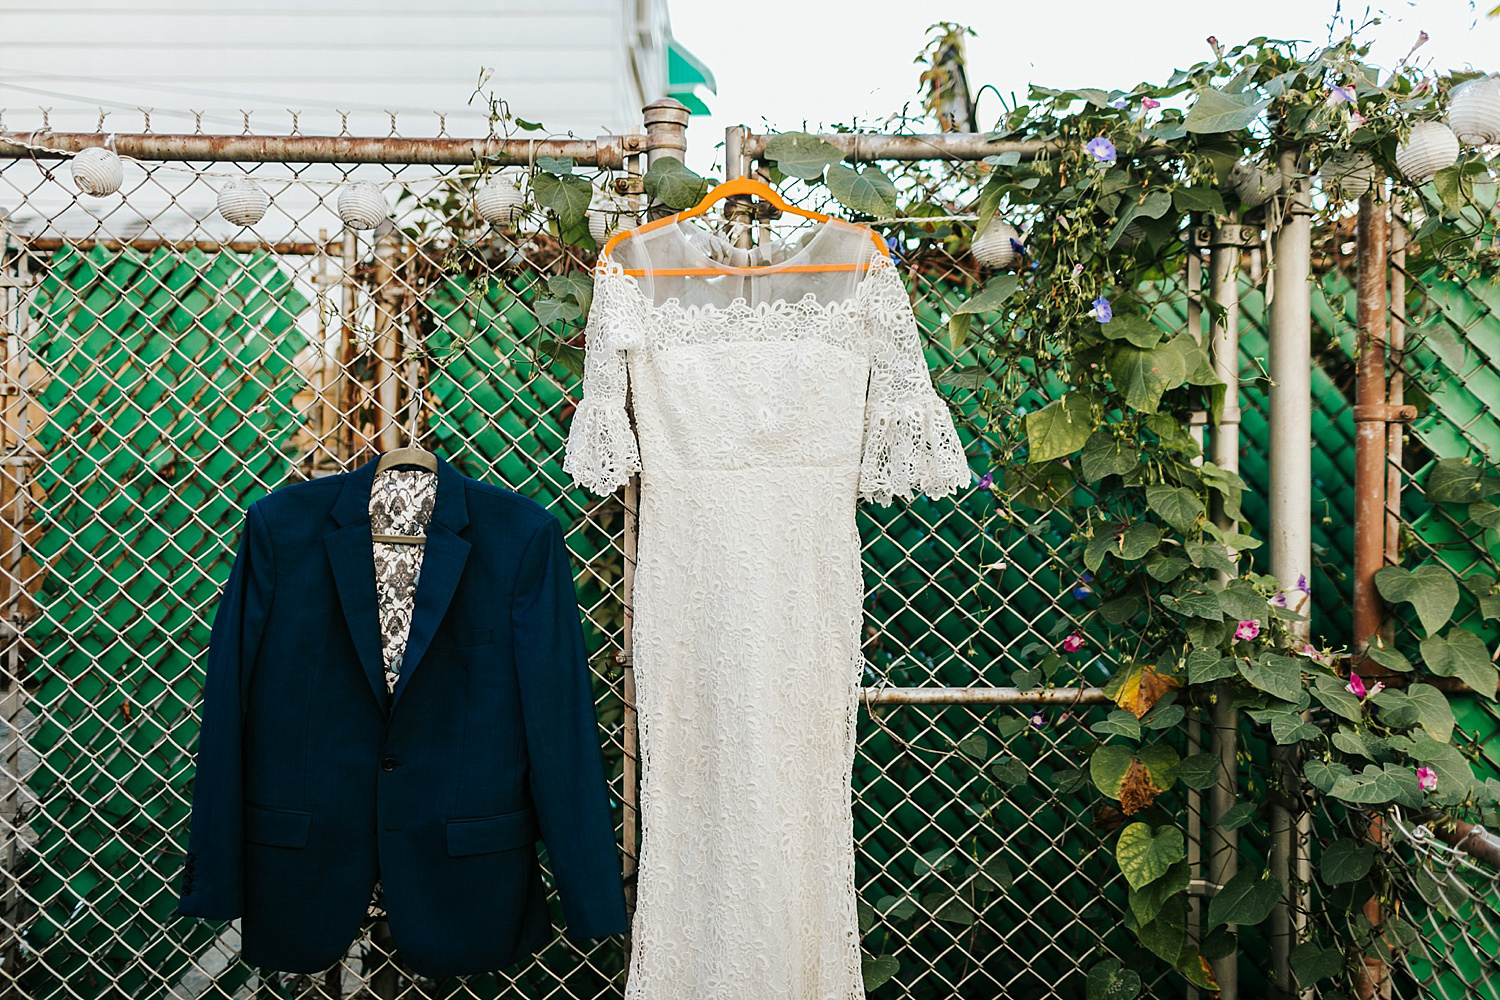 Bride dress and groom's suit in fishtown, philadelphia